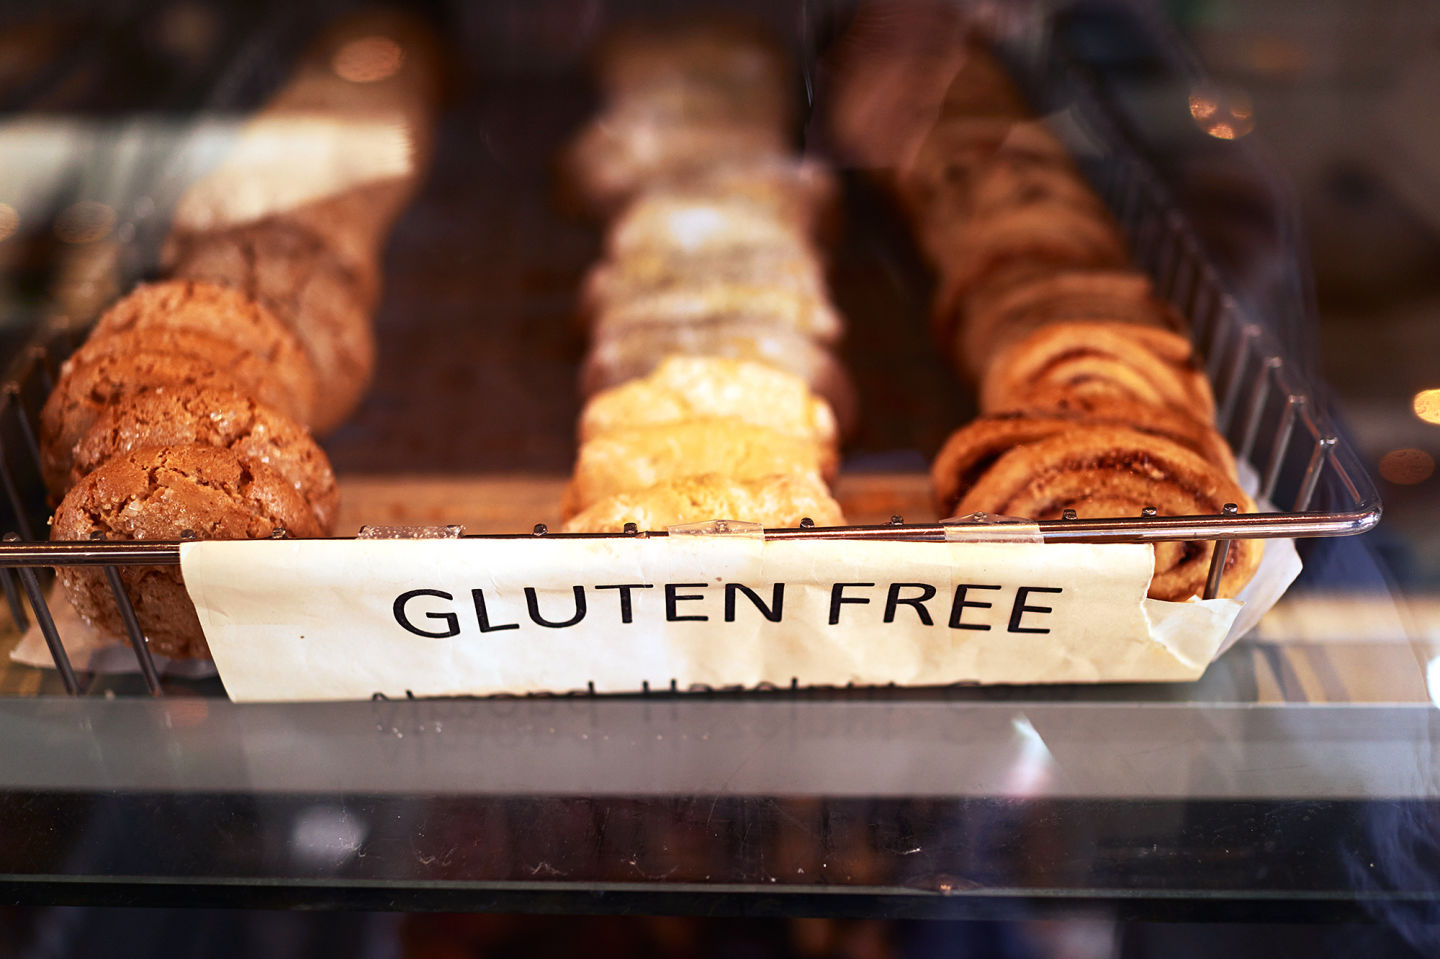 A Protein In The Gut May Explain Why Some Can't Stomach Gluten